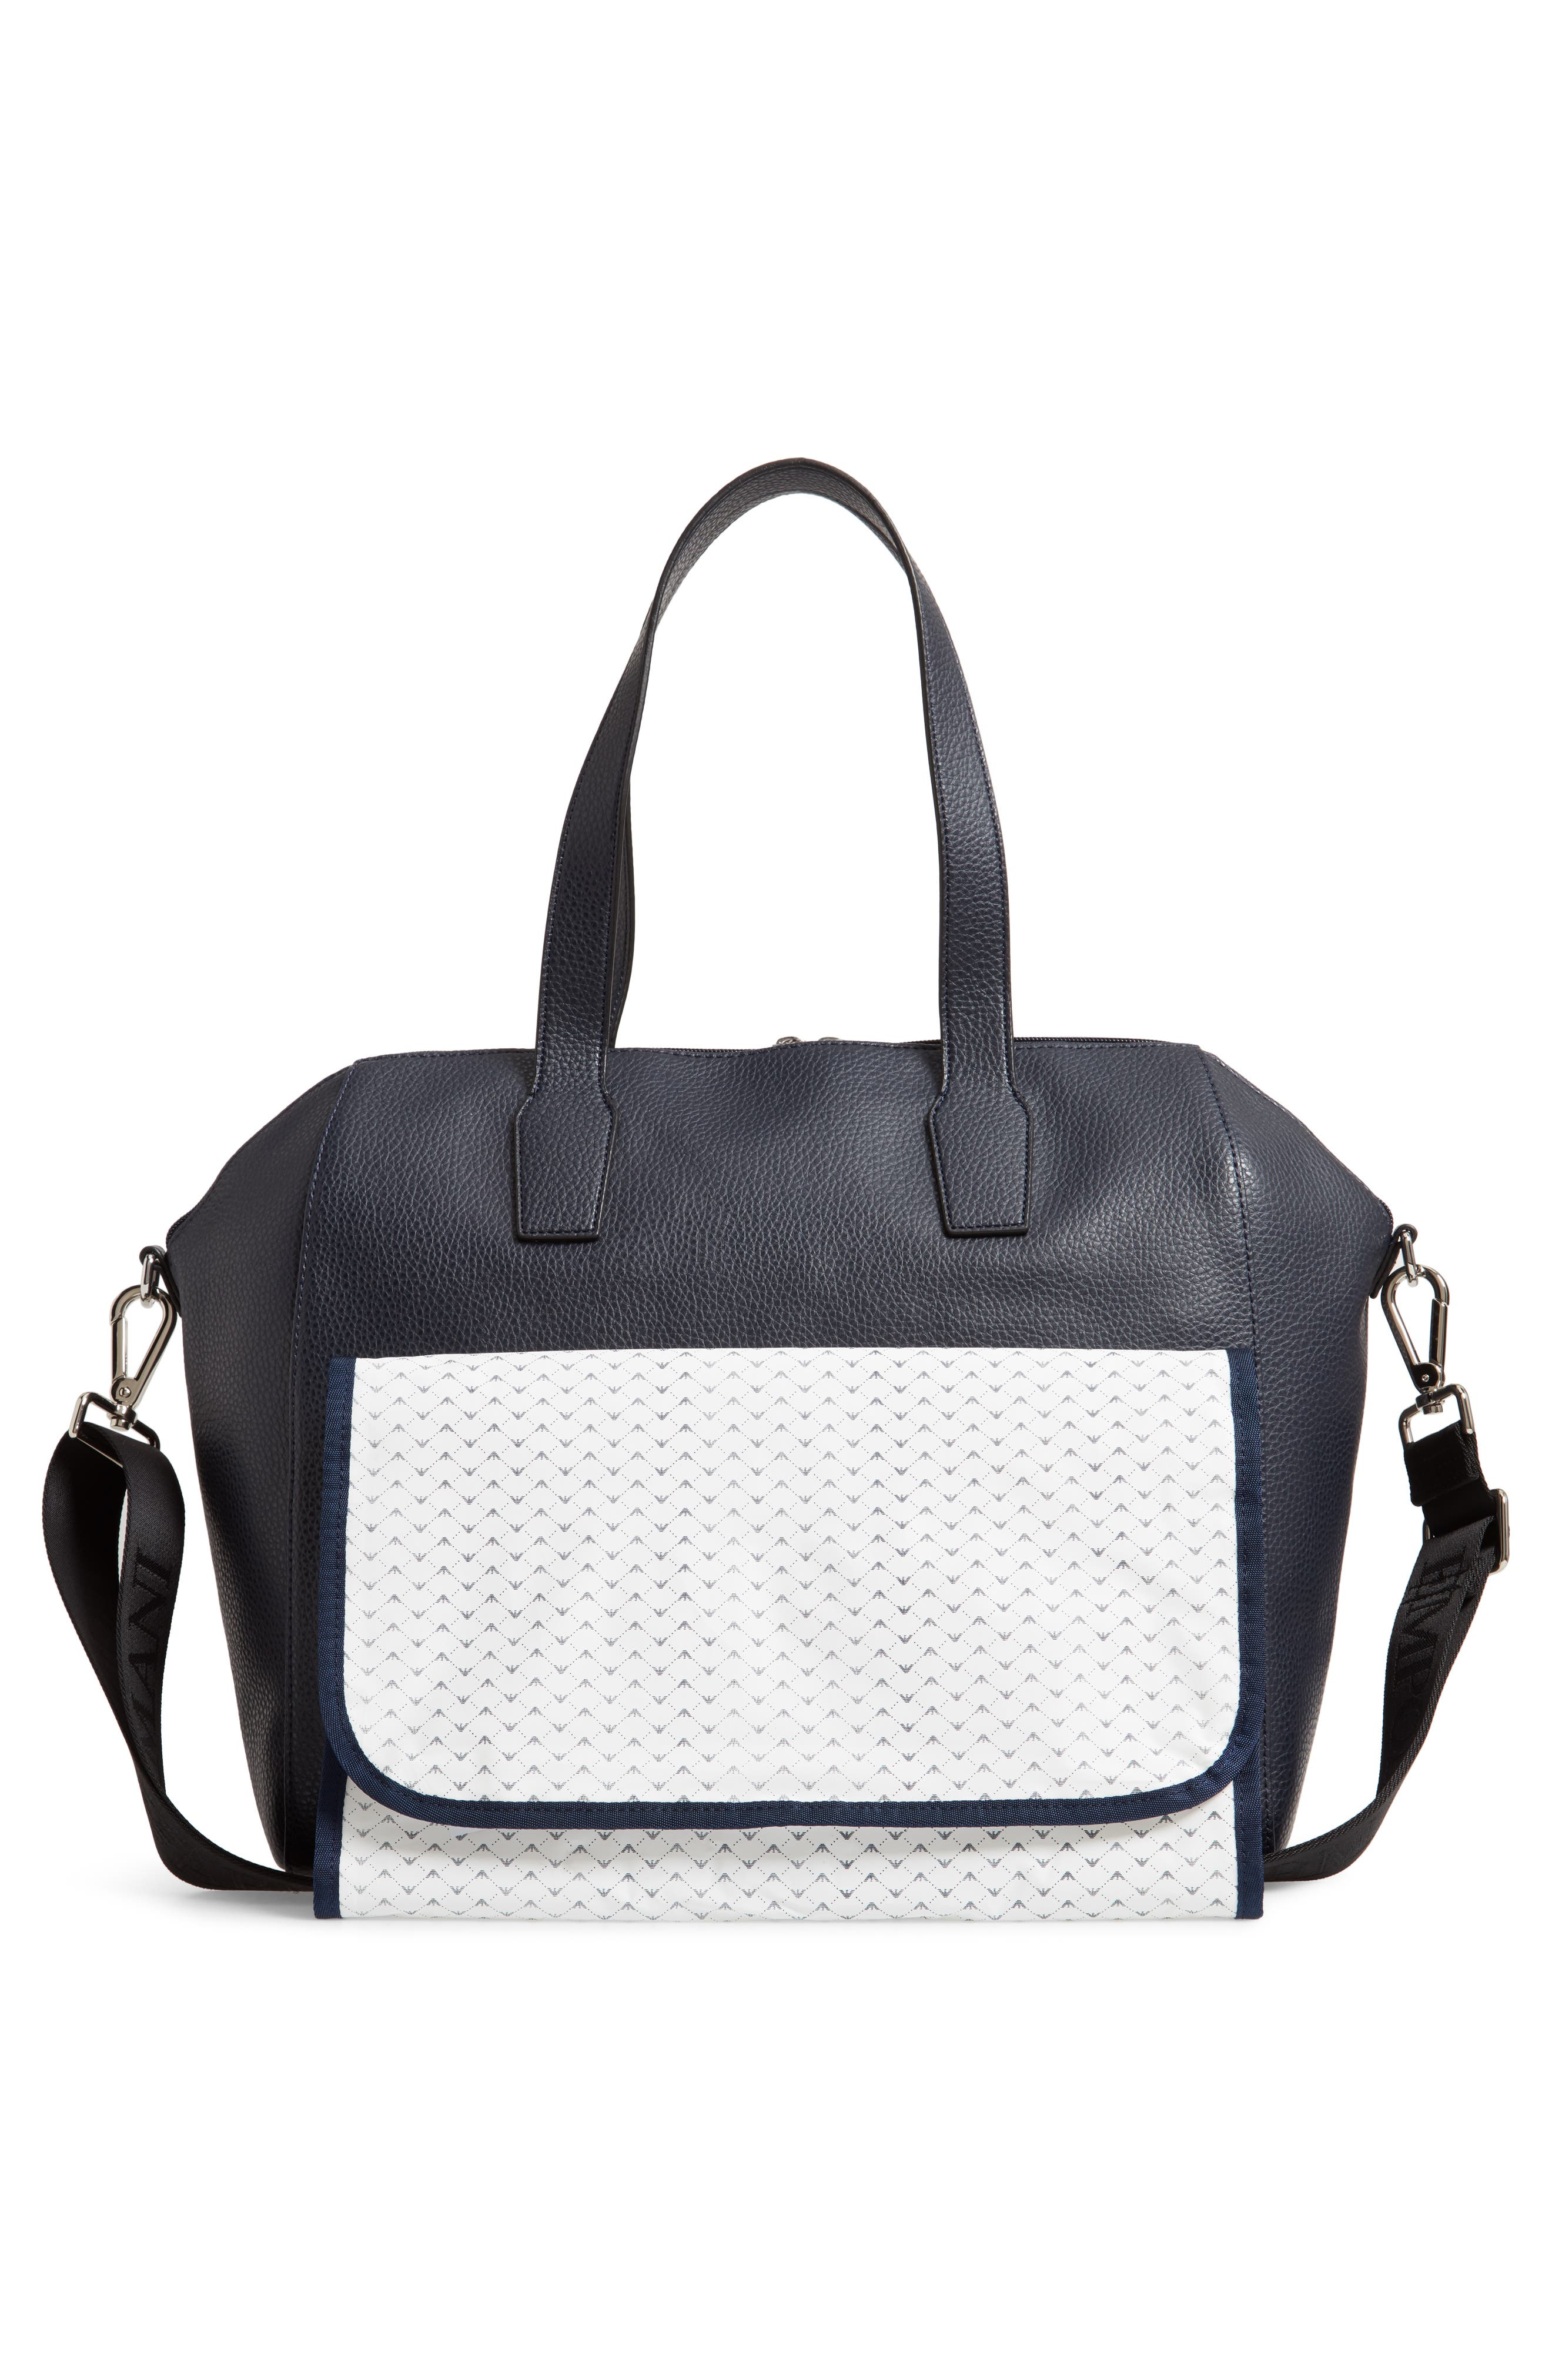 Faux Leather Diaper Bag,                             Alternate thumbnail 3, color,                             SOLID BLUE NAVY